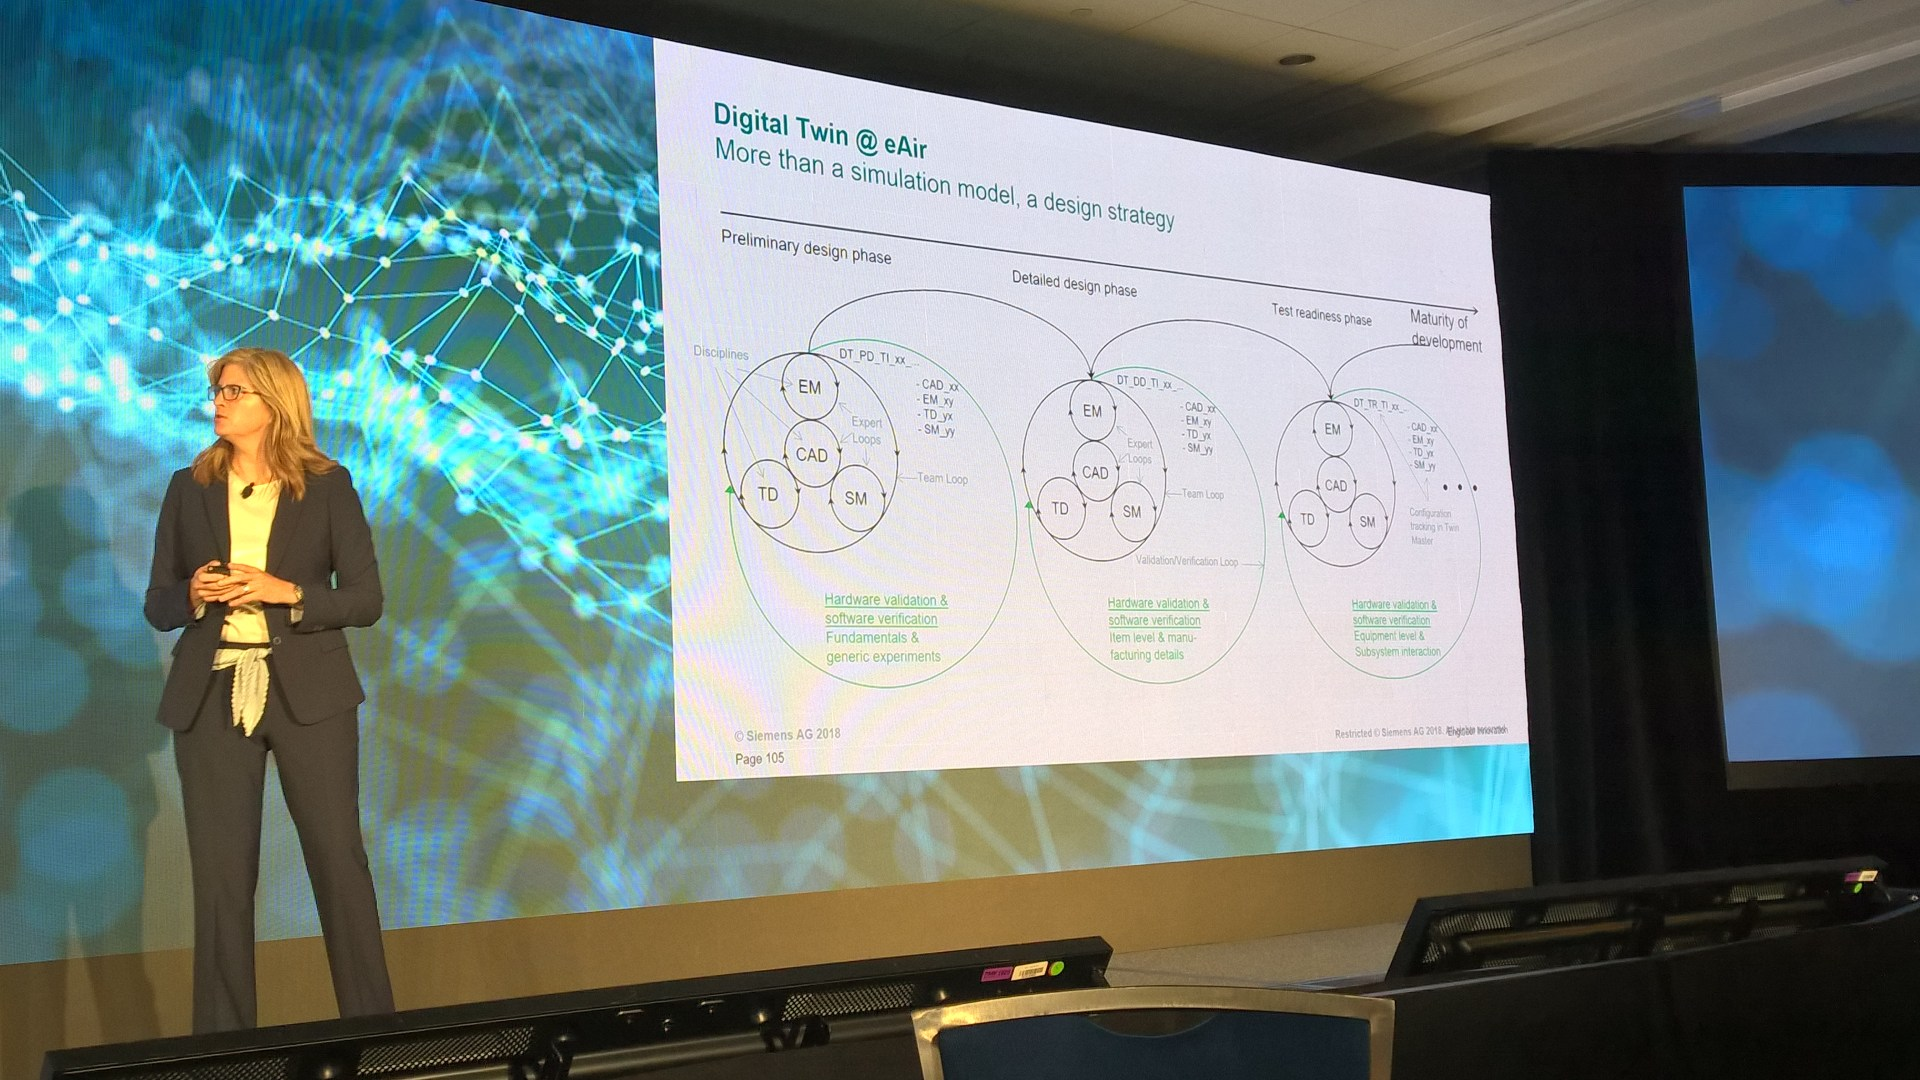 Siemens PLM example of Digital Twin as used on its eAir project